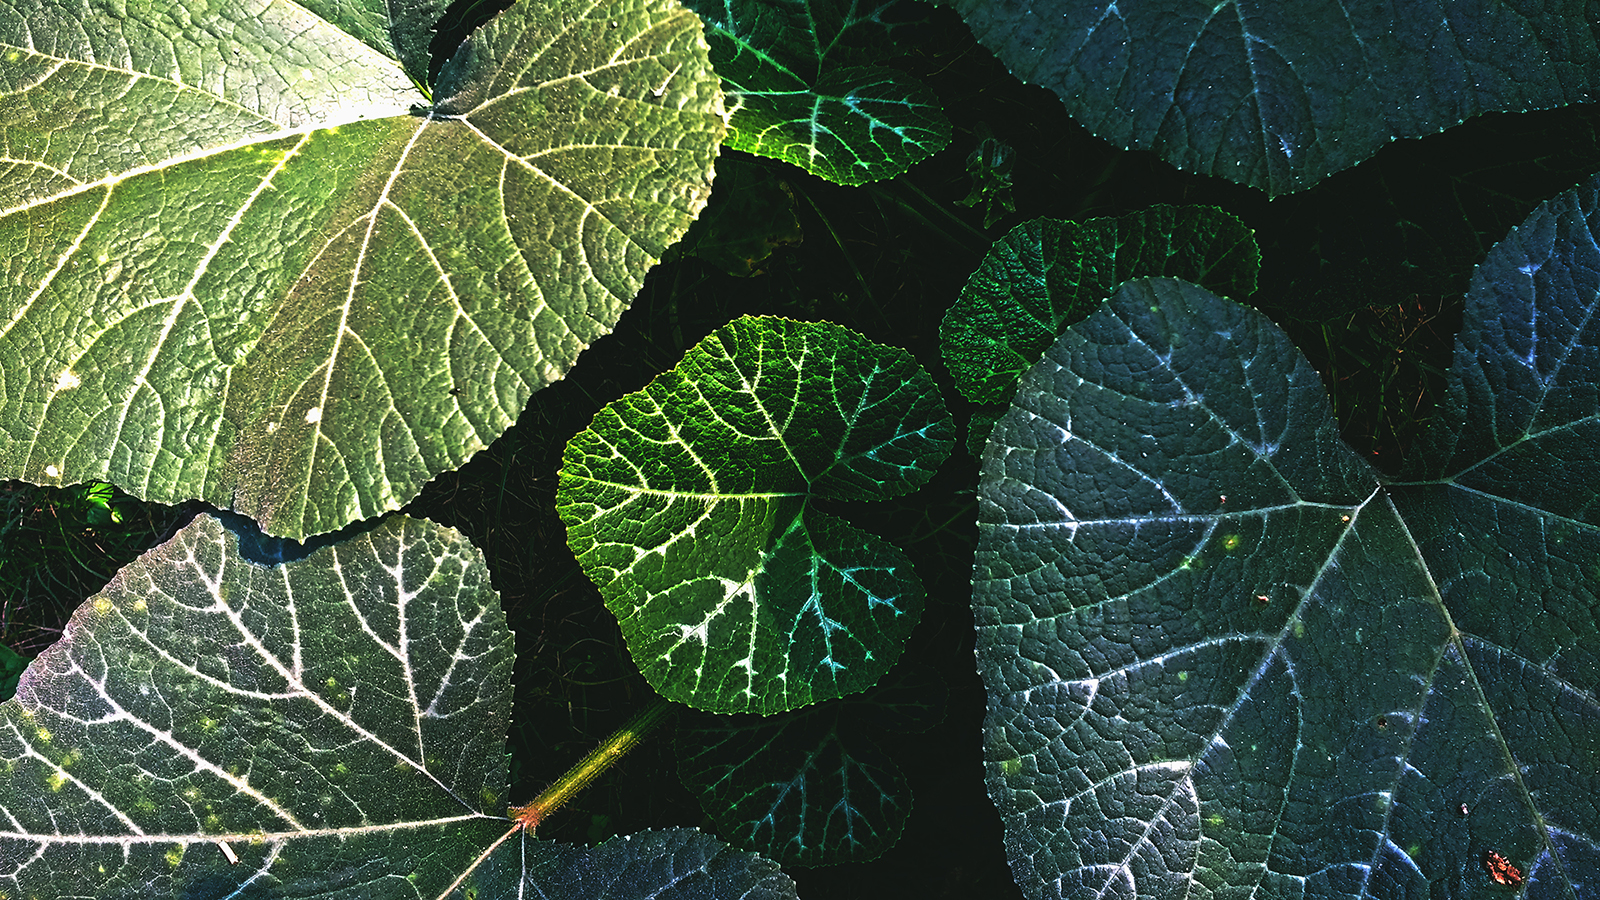 Shadow on leaves.